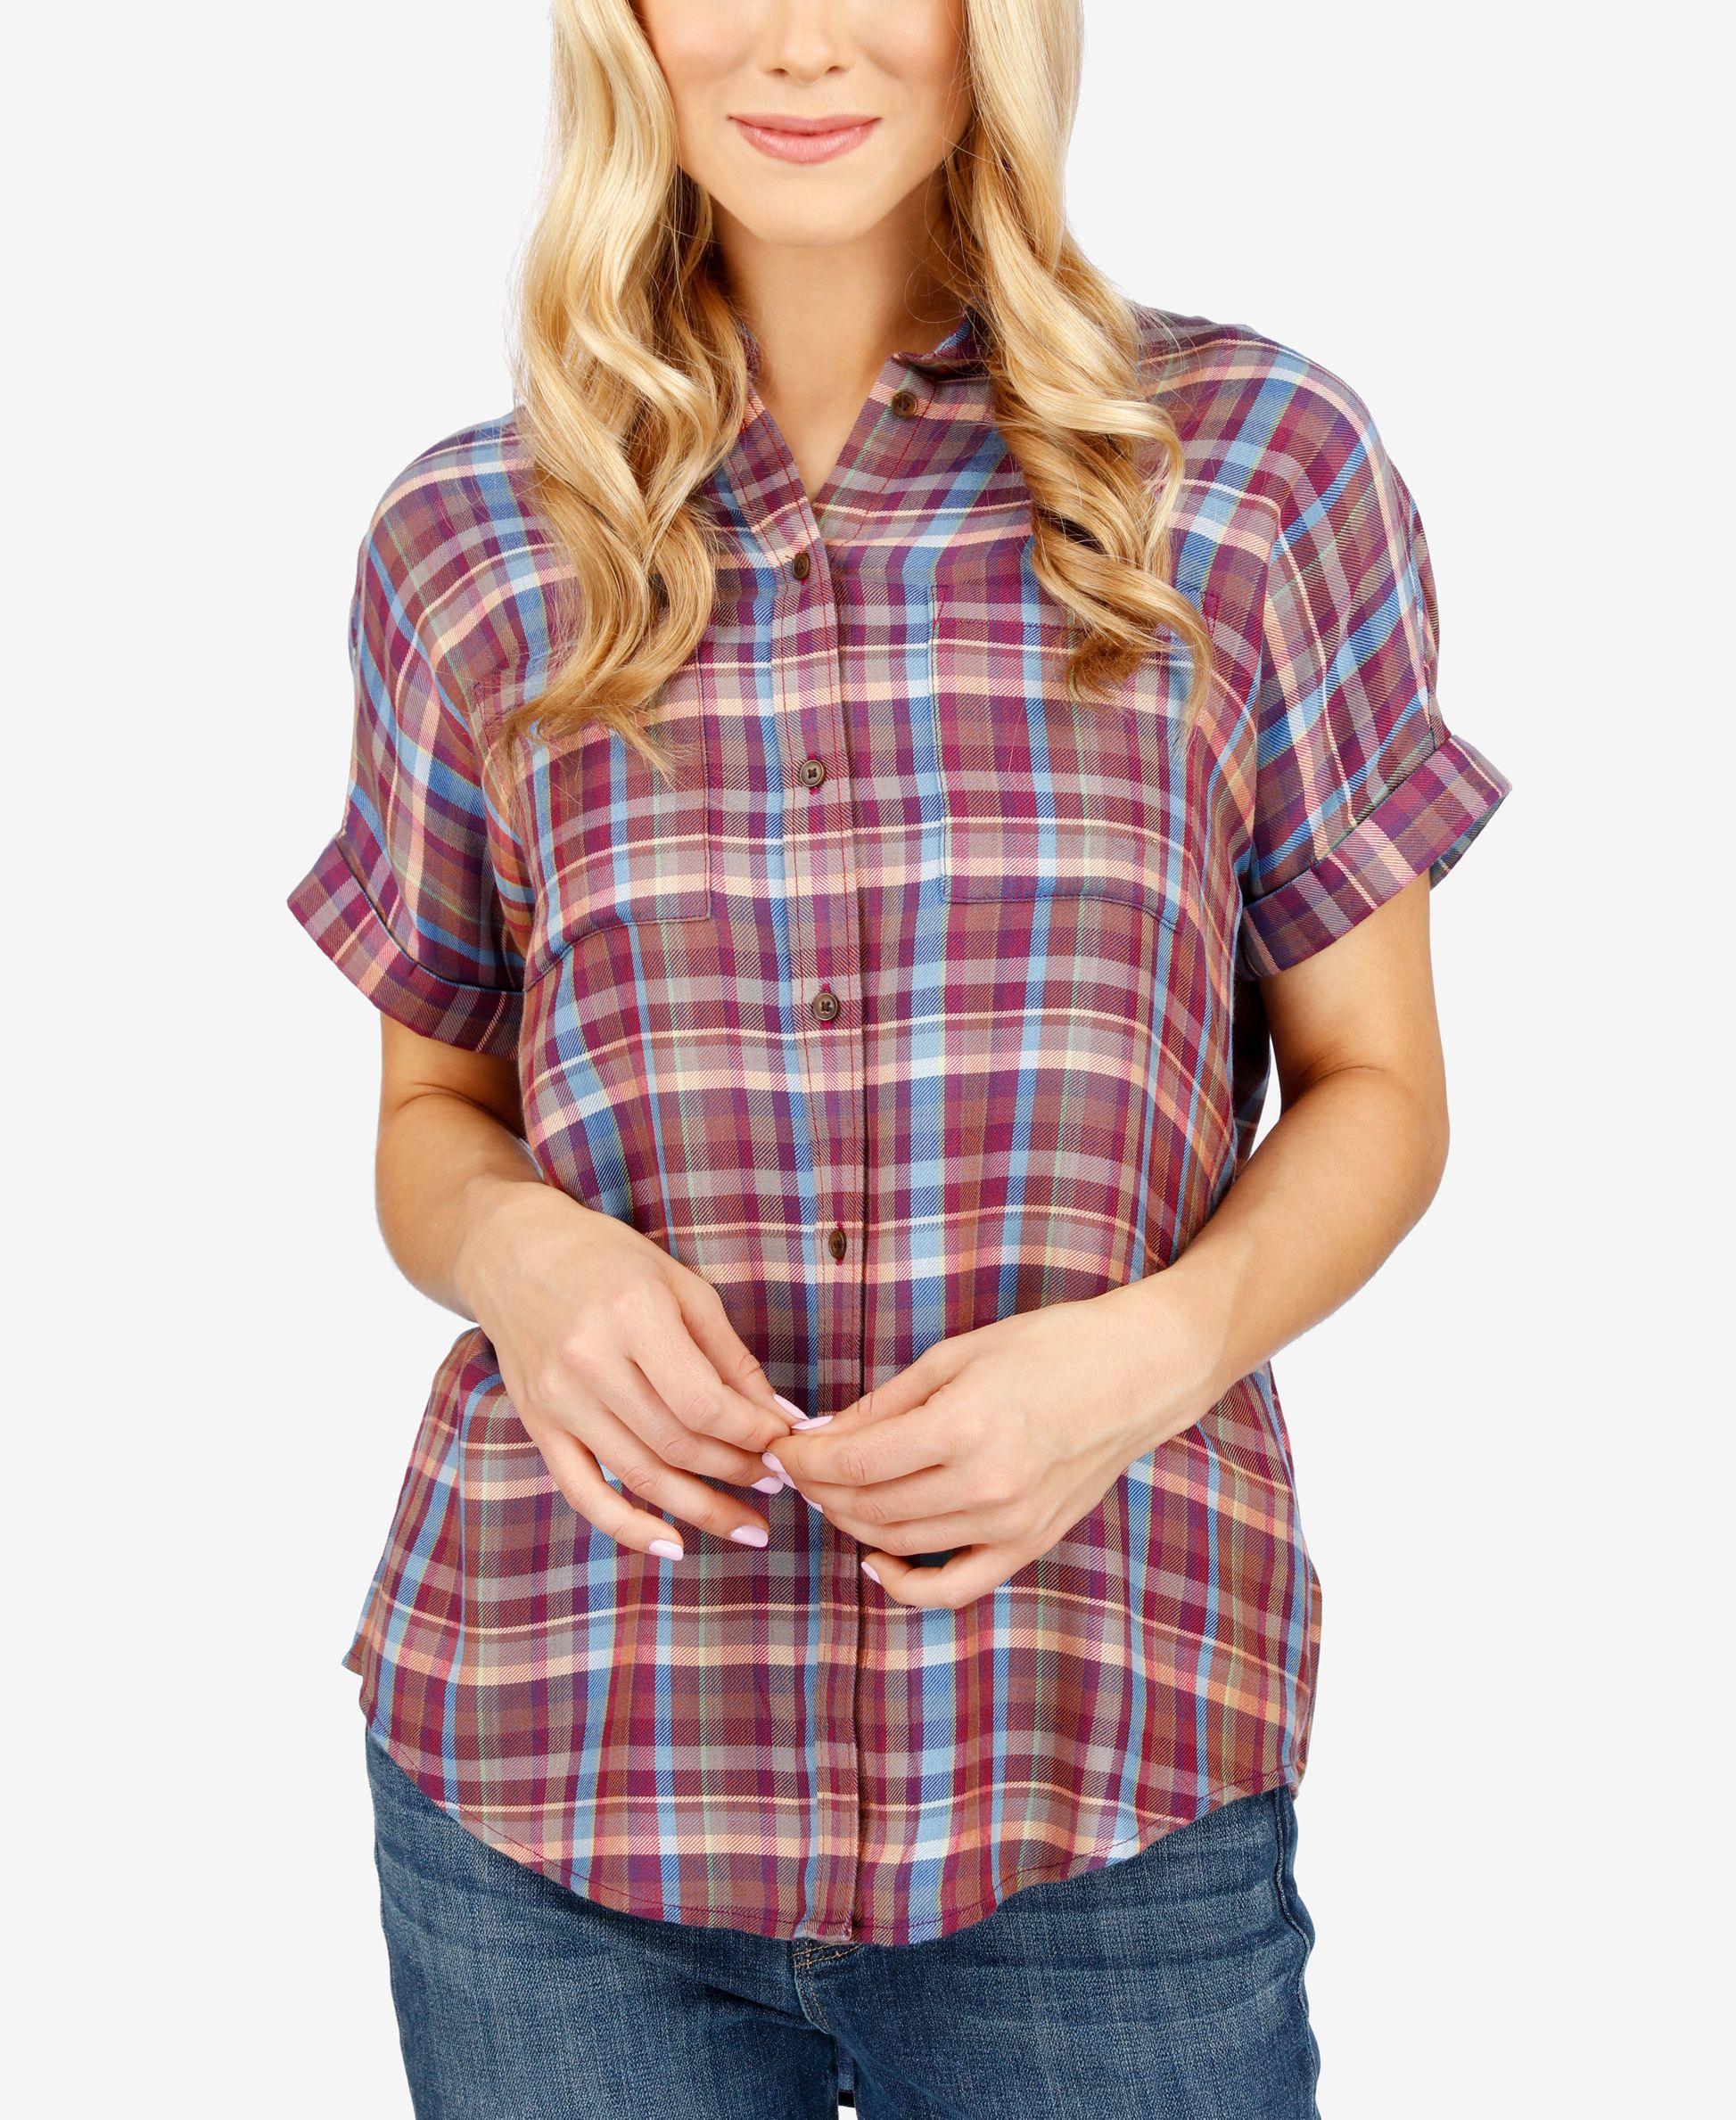 Find a Men's Purple Plaid Shirt, Women's Purple Plaid Shirt and Juniors Purple Plaid Shirt at Macy's. Macy's Presents: The Edit - A curated mix of fashion and inspiration Check It Out Free Shipping with $75 purchase + Free Store Pickup.